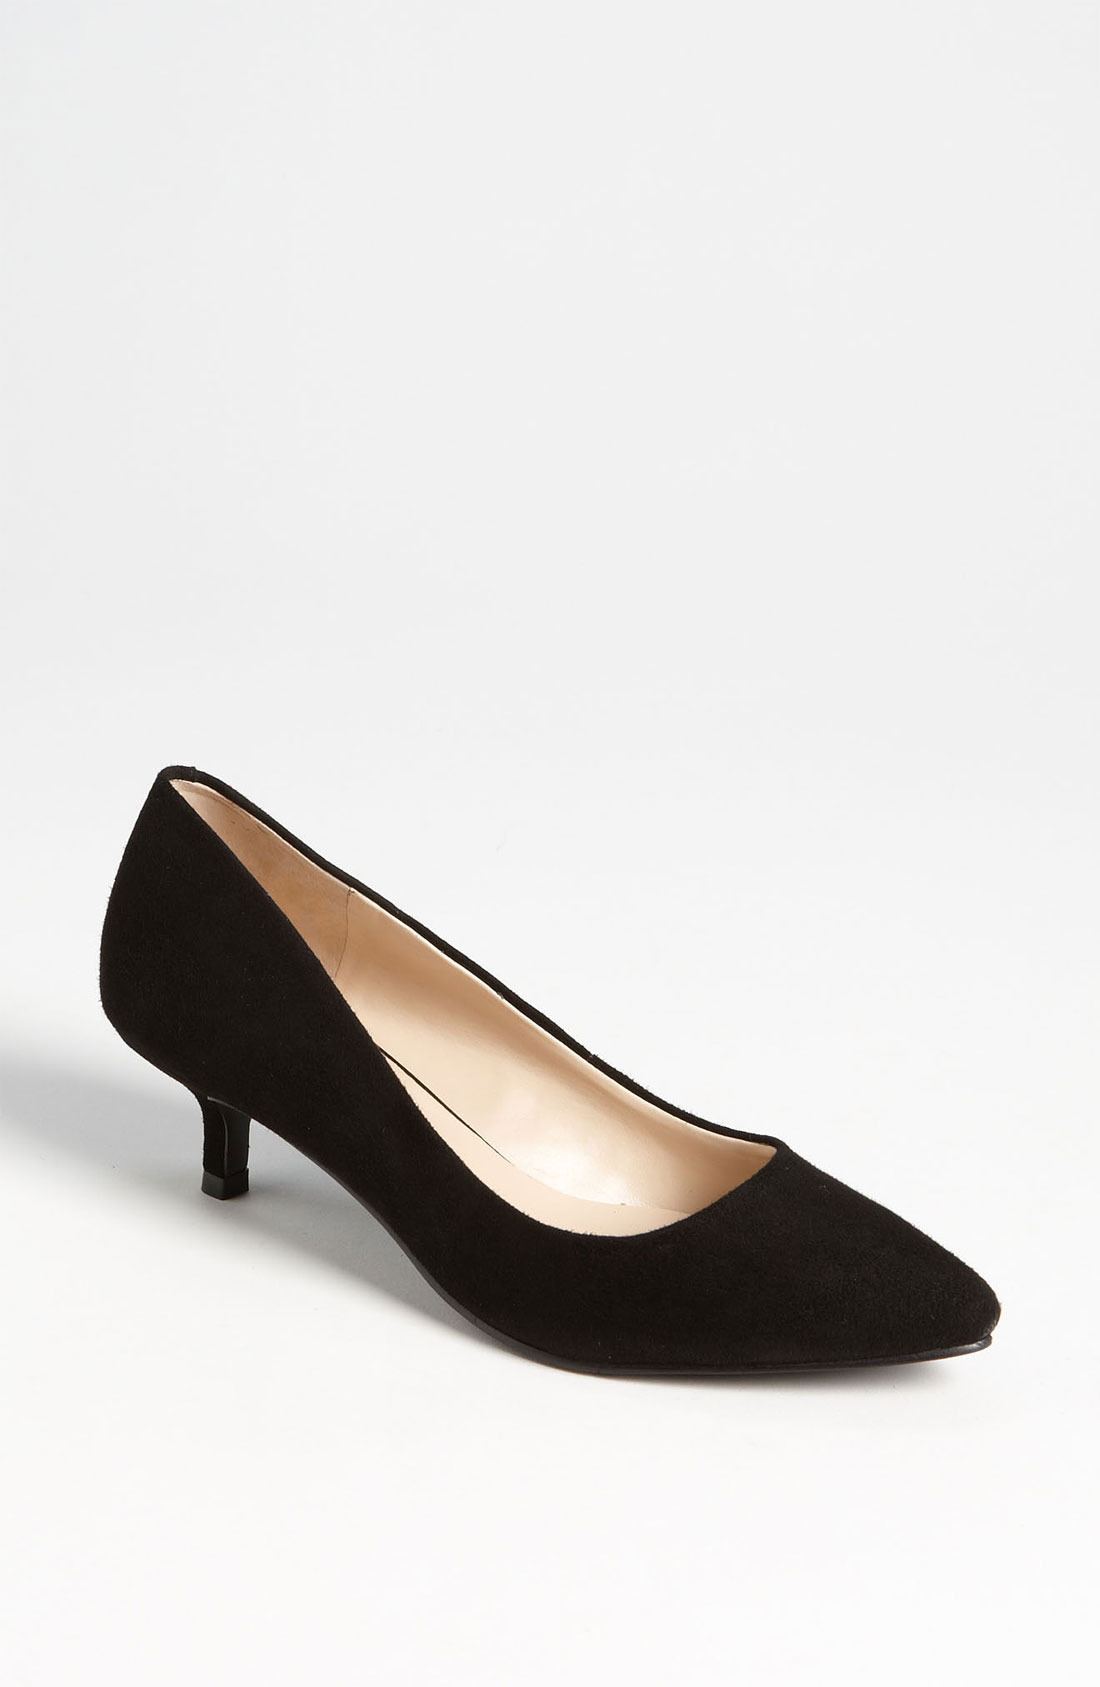 Buy Pumps at Macy's and get FREE SHIPPING with $99 purchase! Great selection of nude pumps, black, red and white pumps of all styles from popular brands.